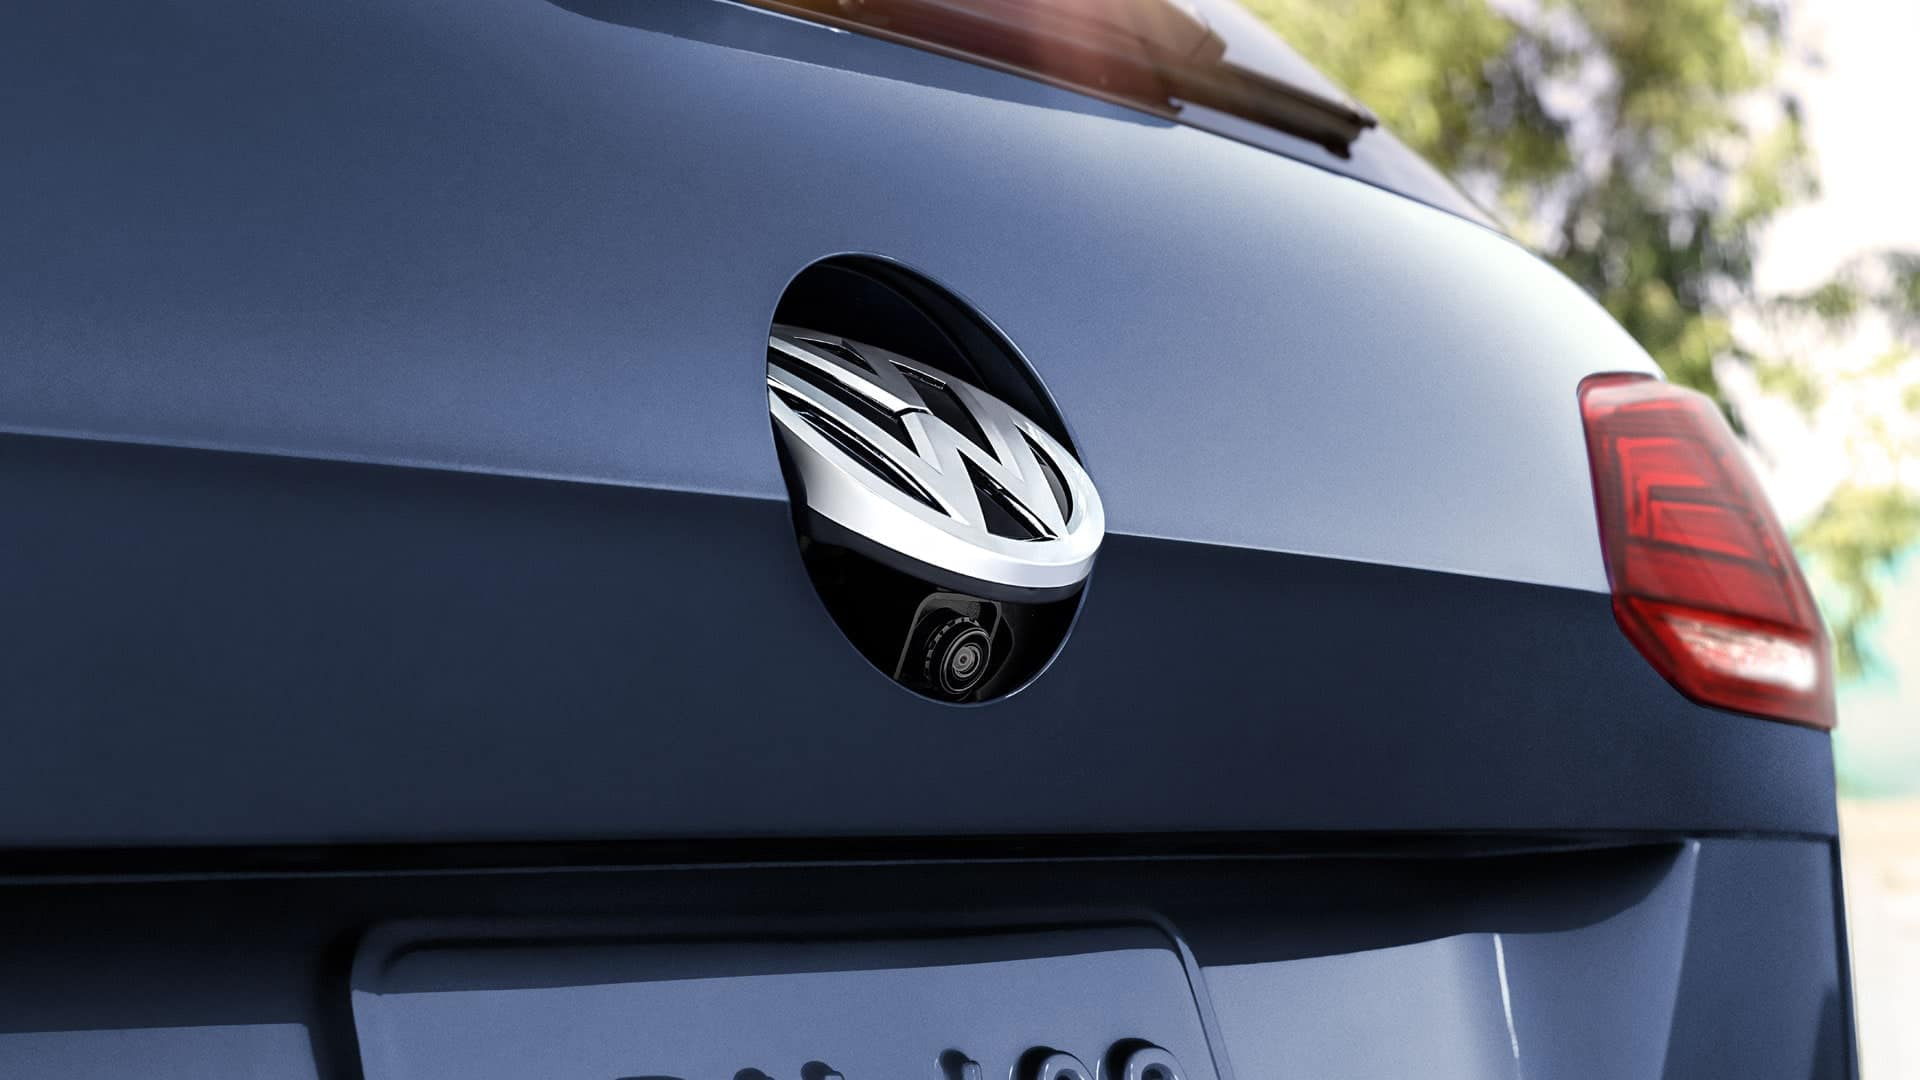 2019 VW Golf SportWagen rearview camera